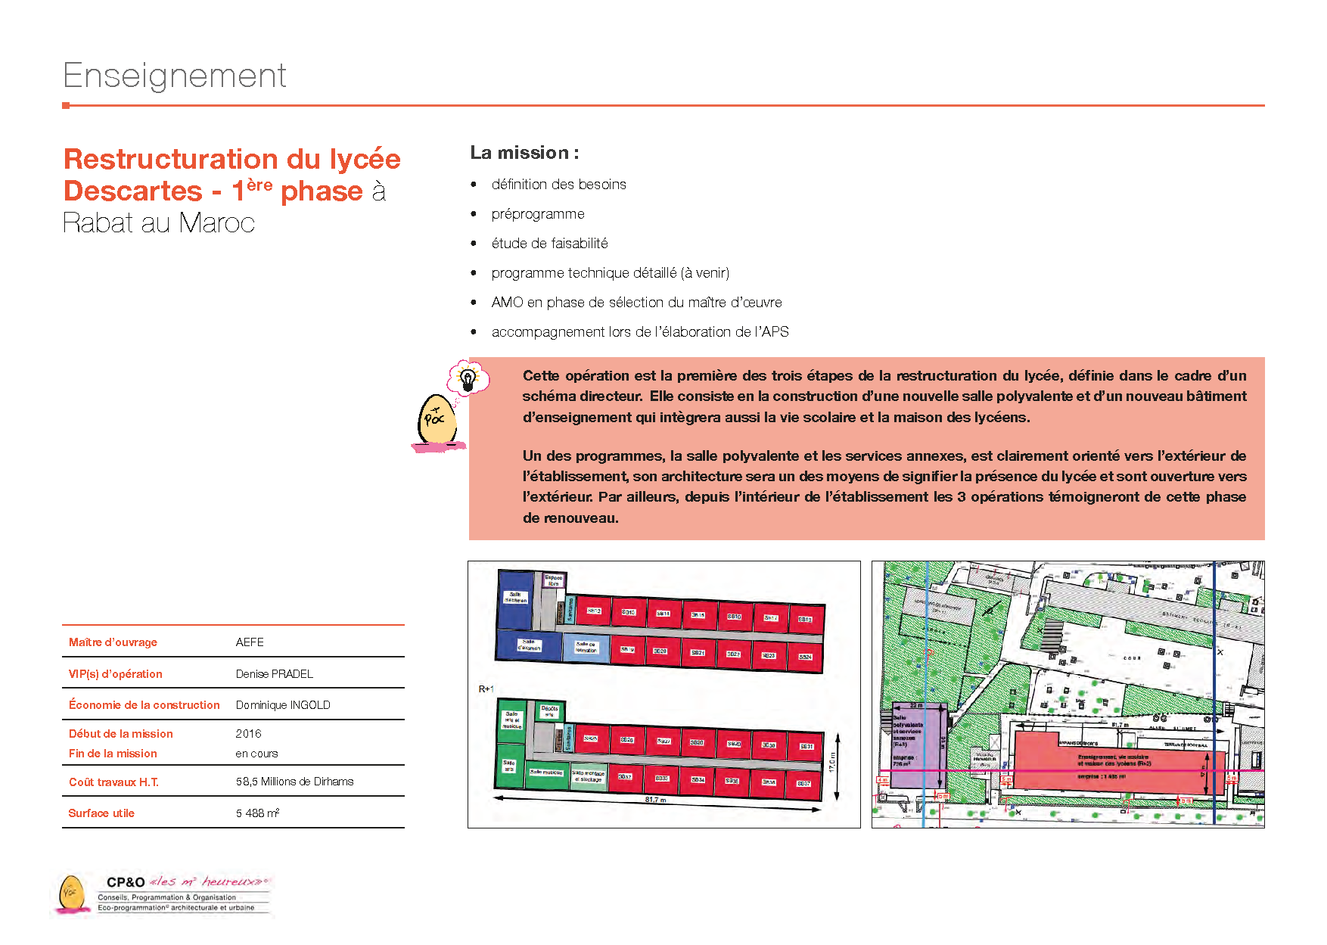 enseignement_Page_19.png